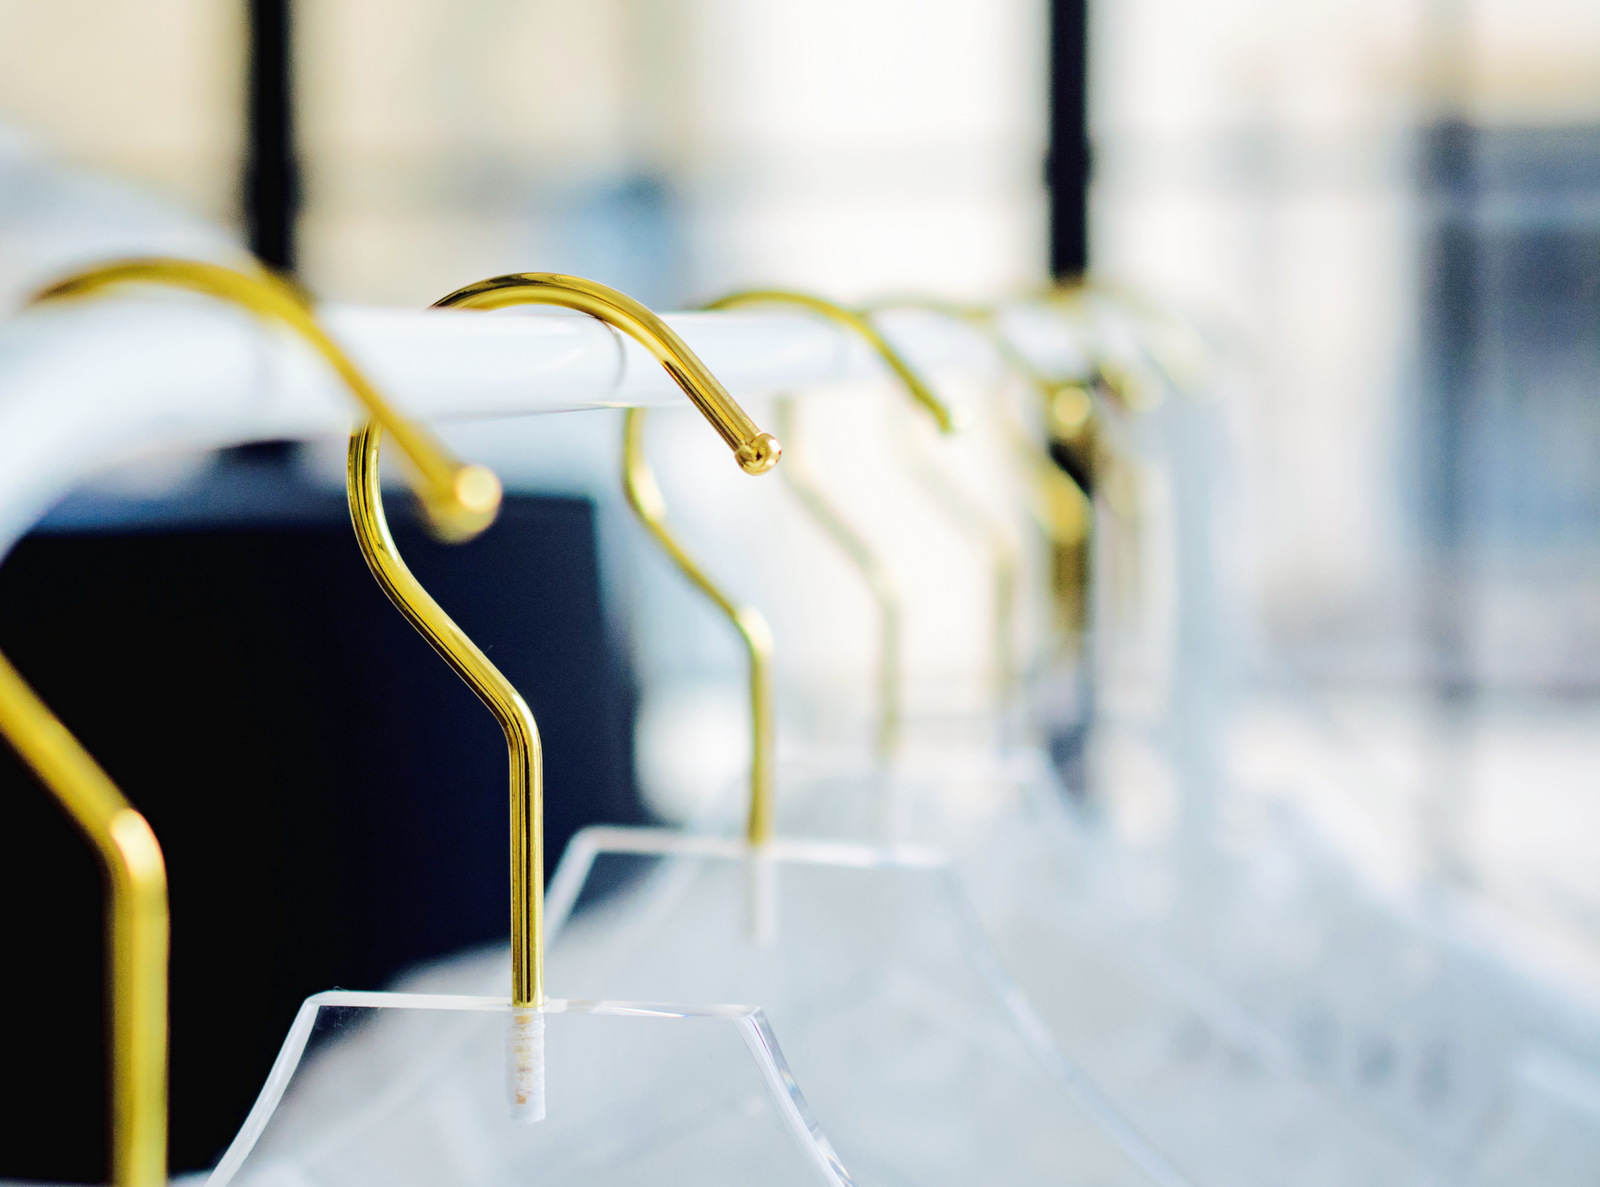 Aleeka-Events-Elequiim-Lucite-hangers-stylish-accessories-for-the-stylish-bride-and-her-bridesmaids